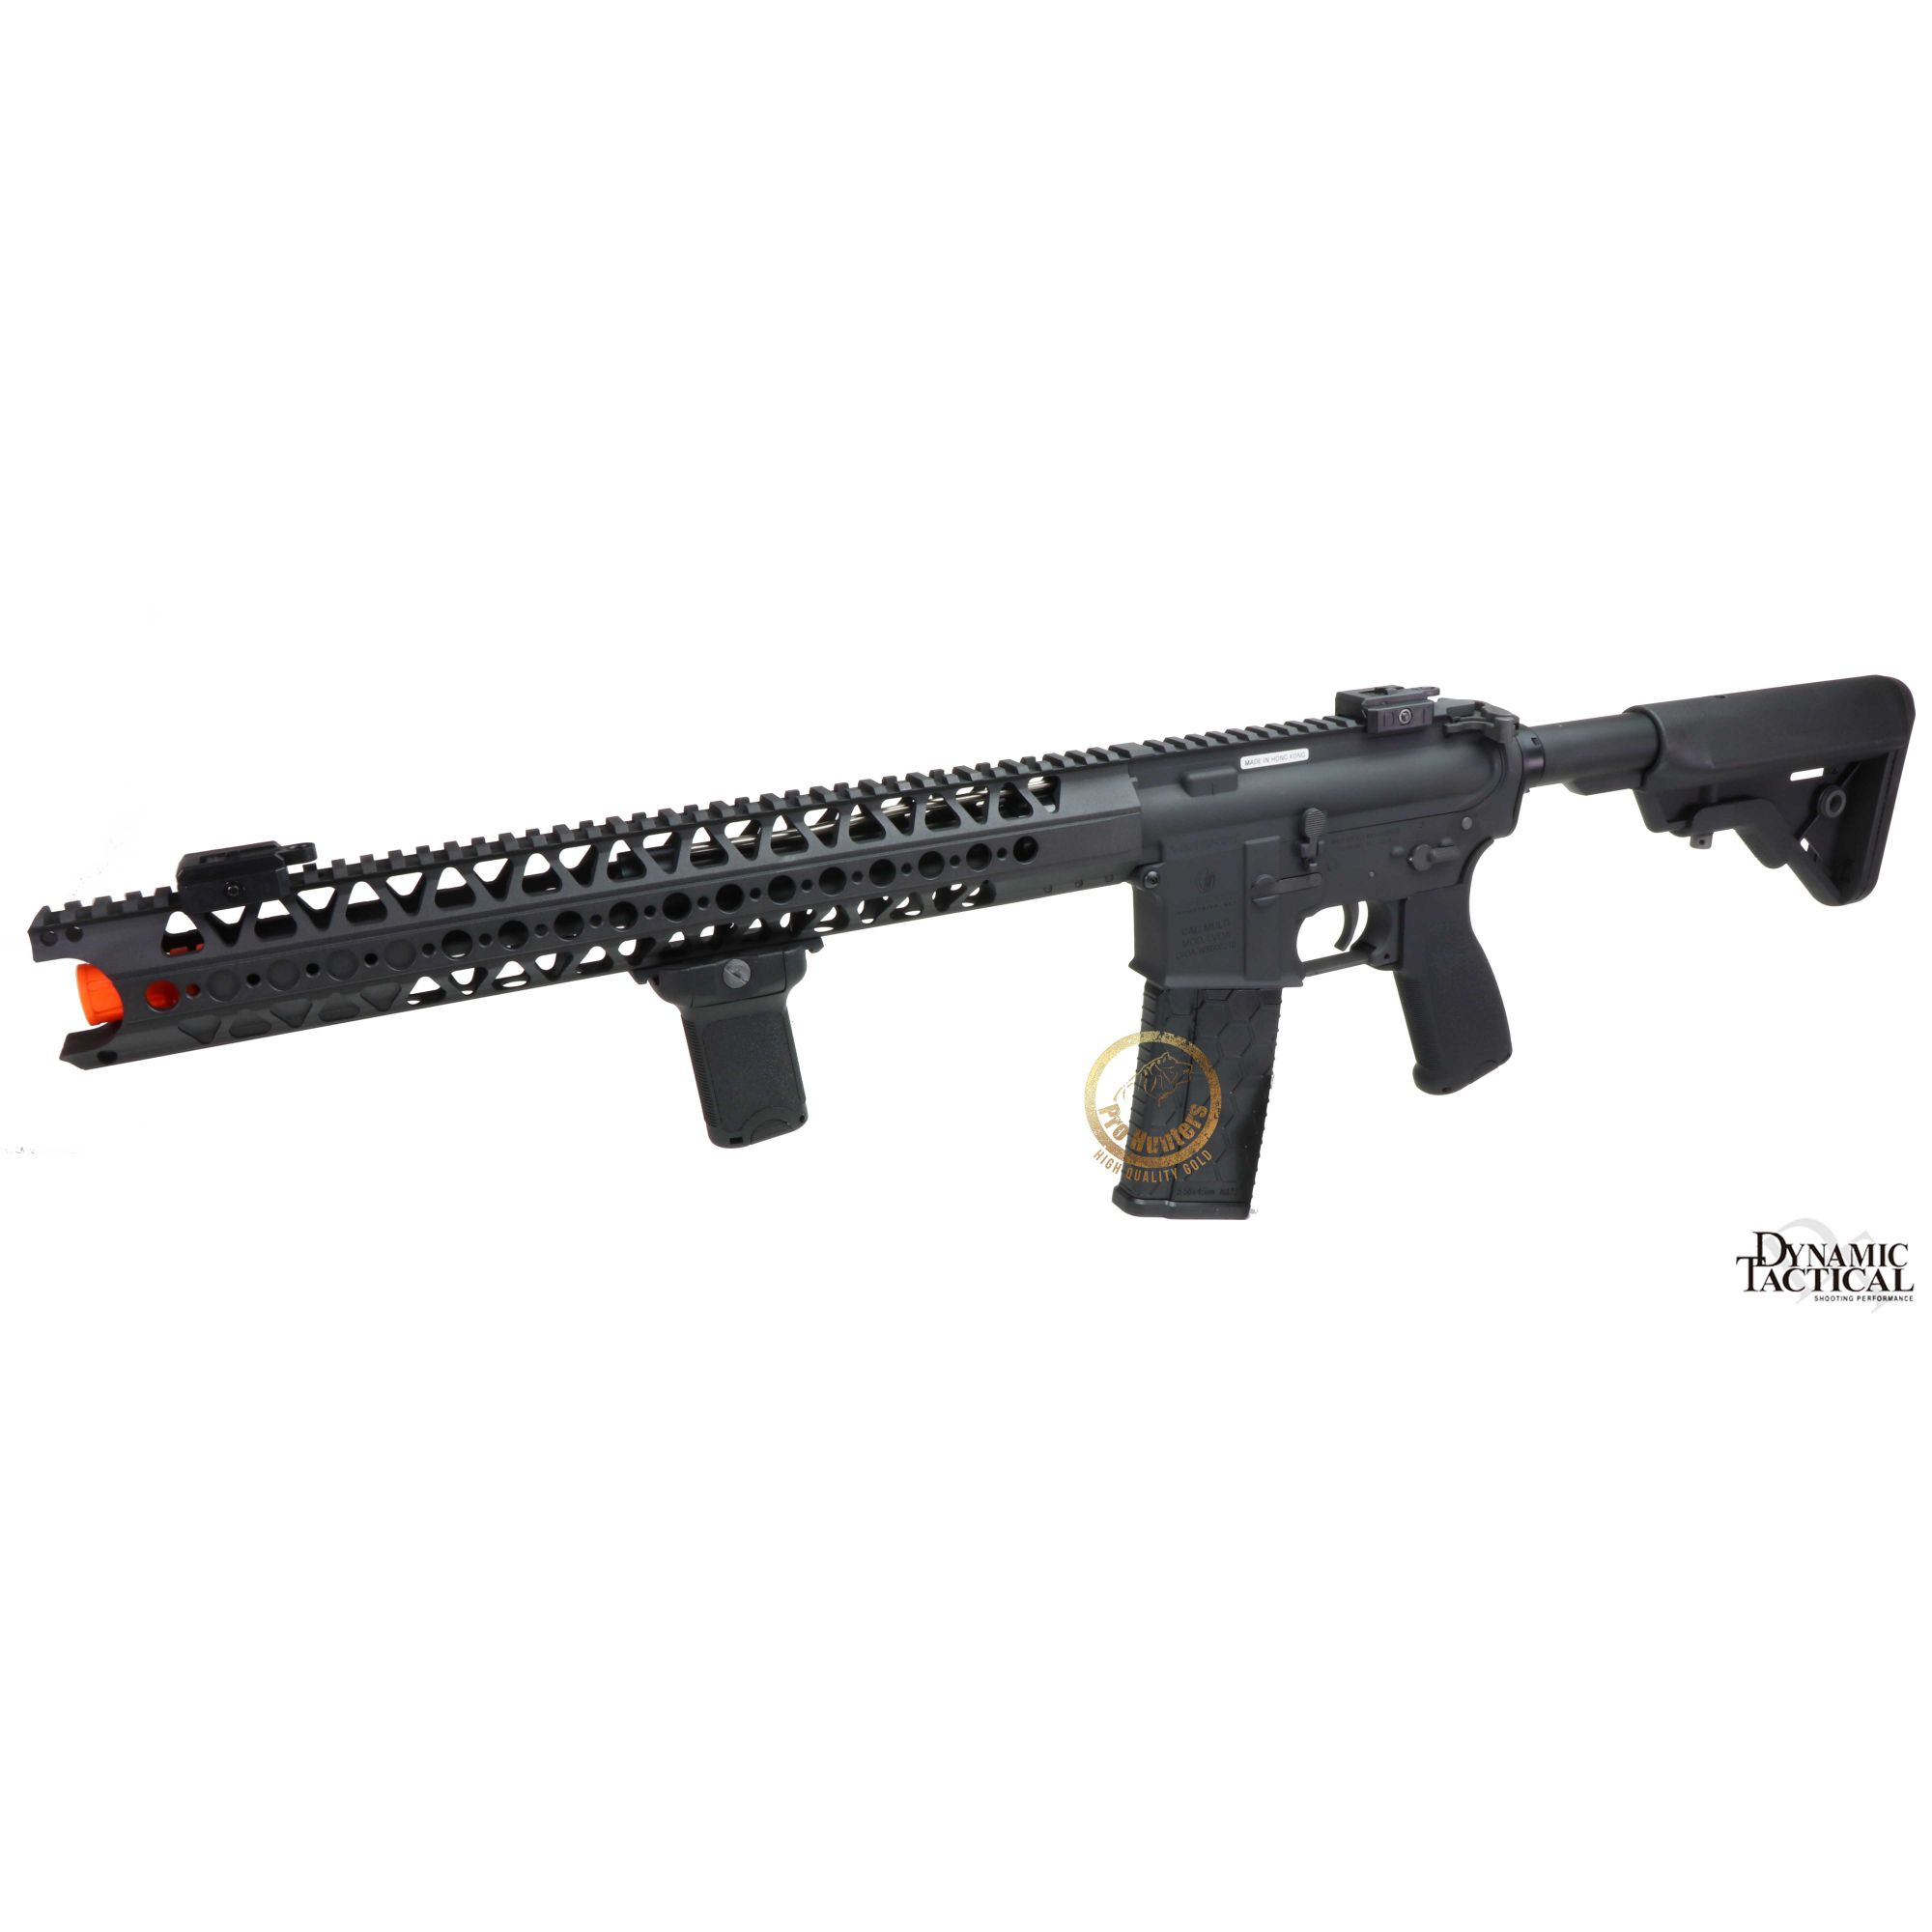 Rifle Airsoft Dytac LA M4 Carbine - Black